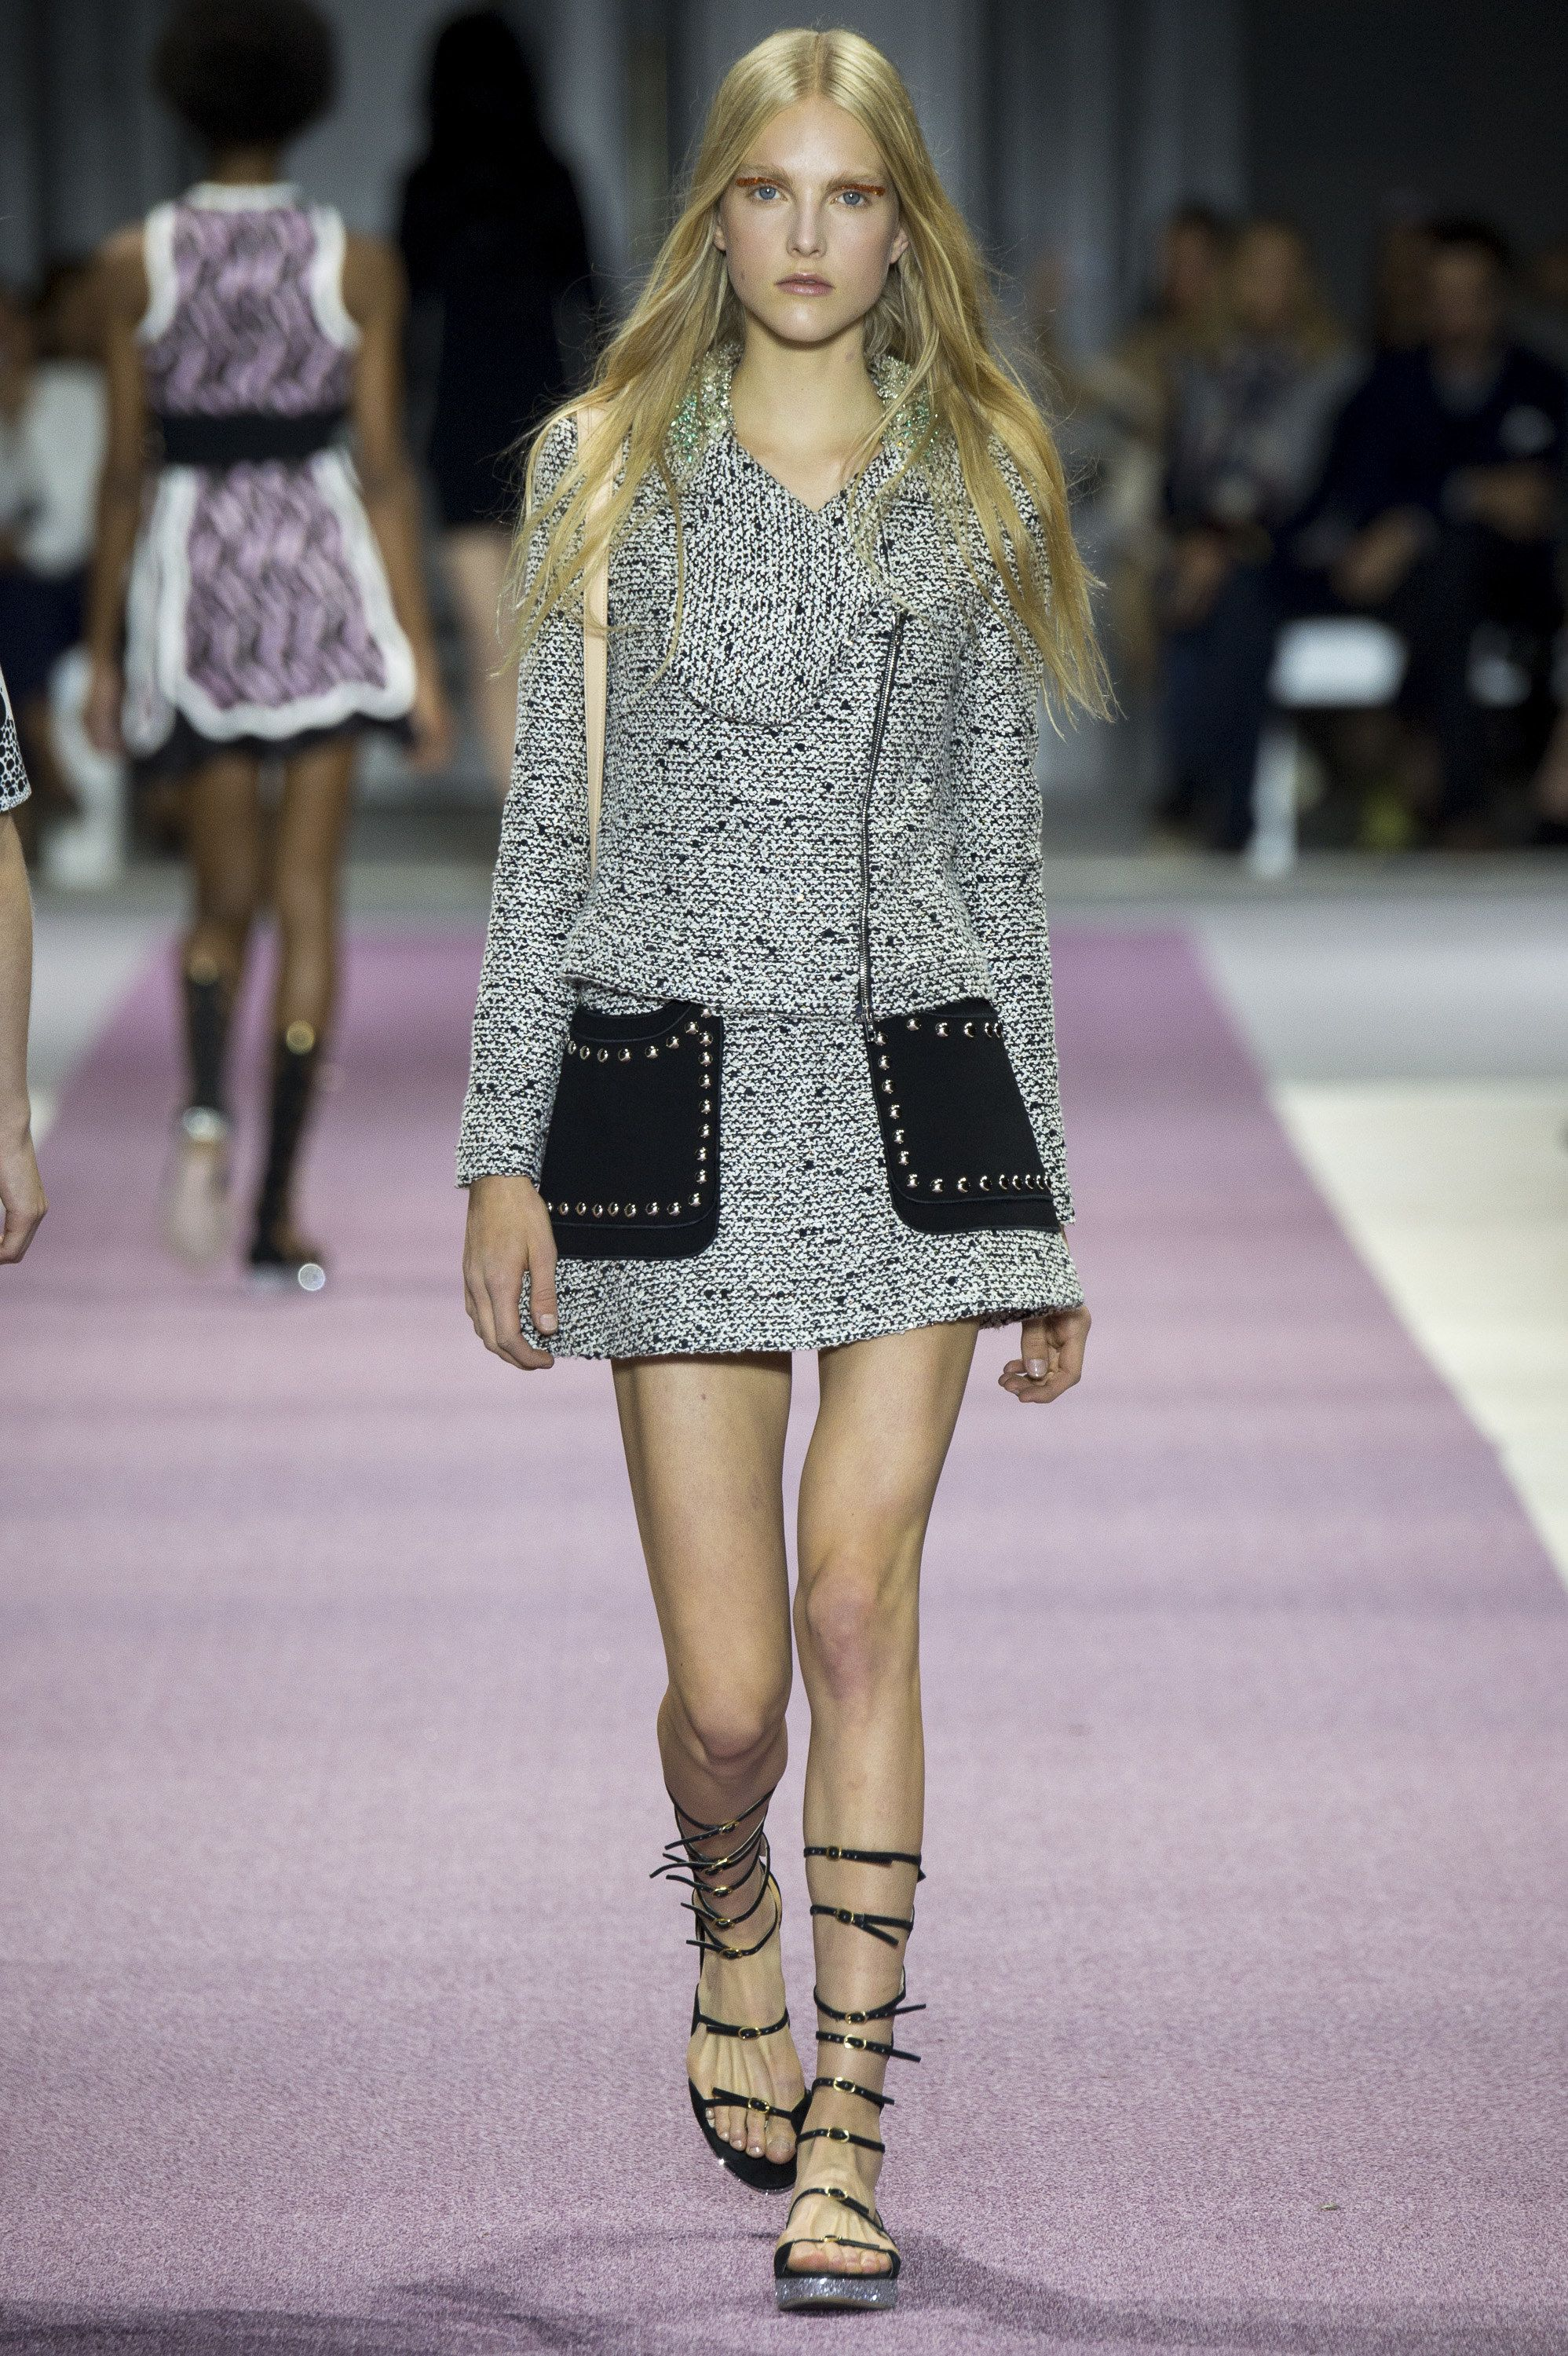 The perfect fall outfit from Giambattista Valli's newest collection